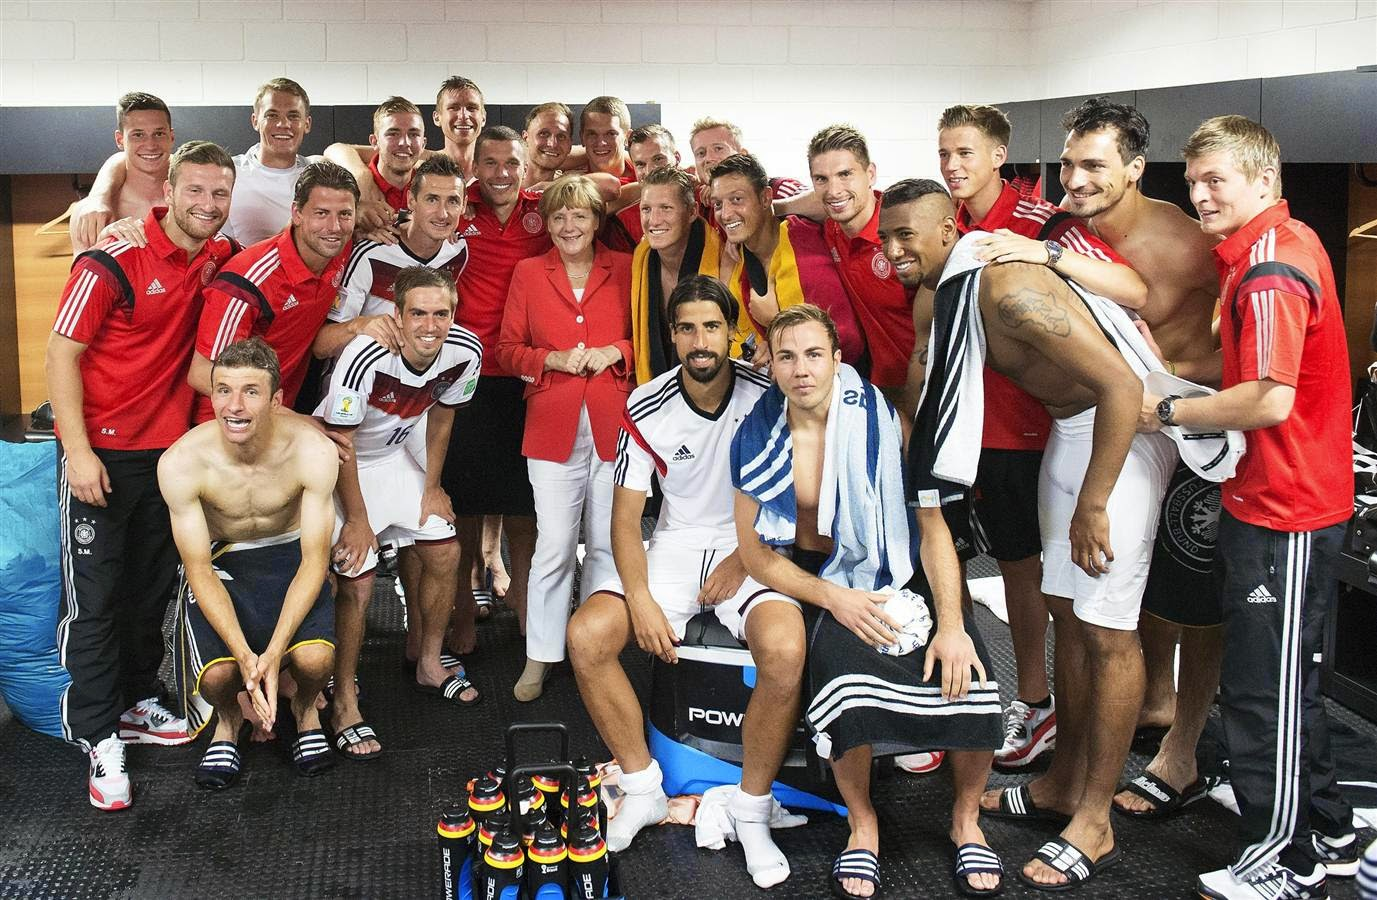 GERMANY FOOTBALL TEAM AT WORLD CUP